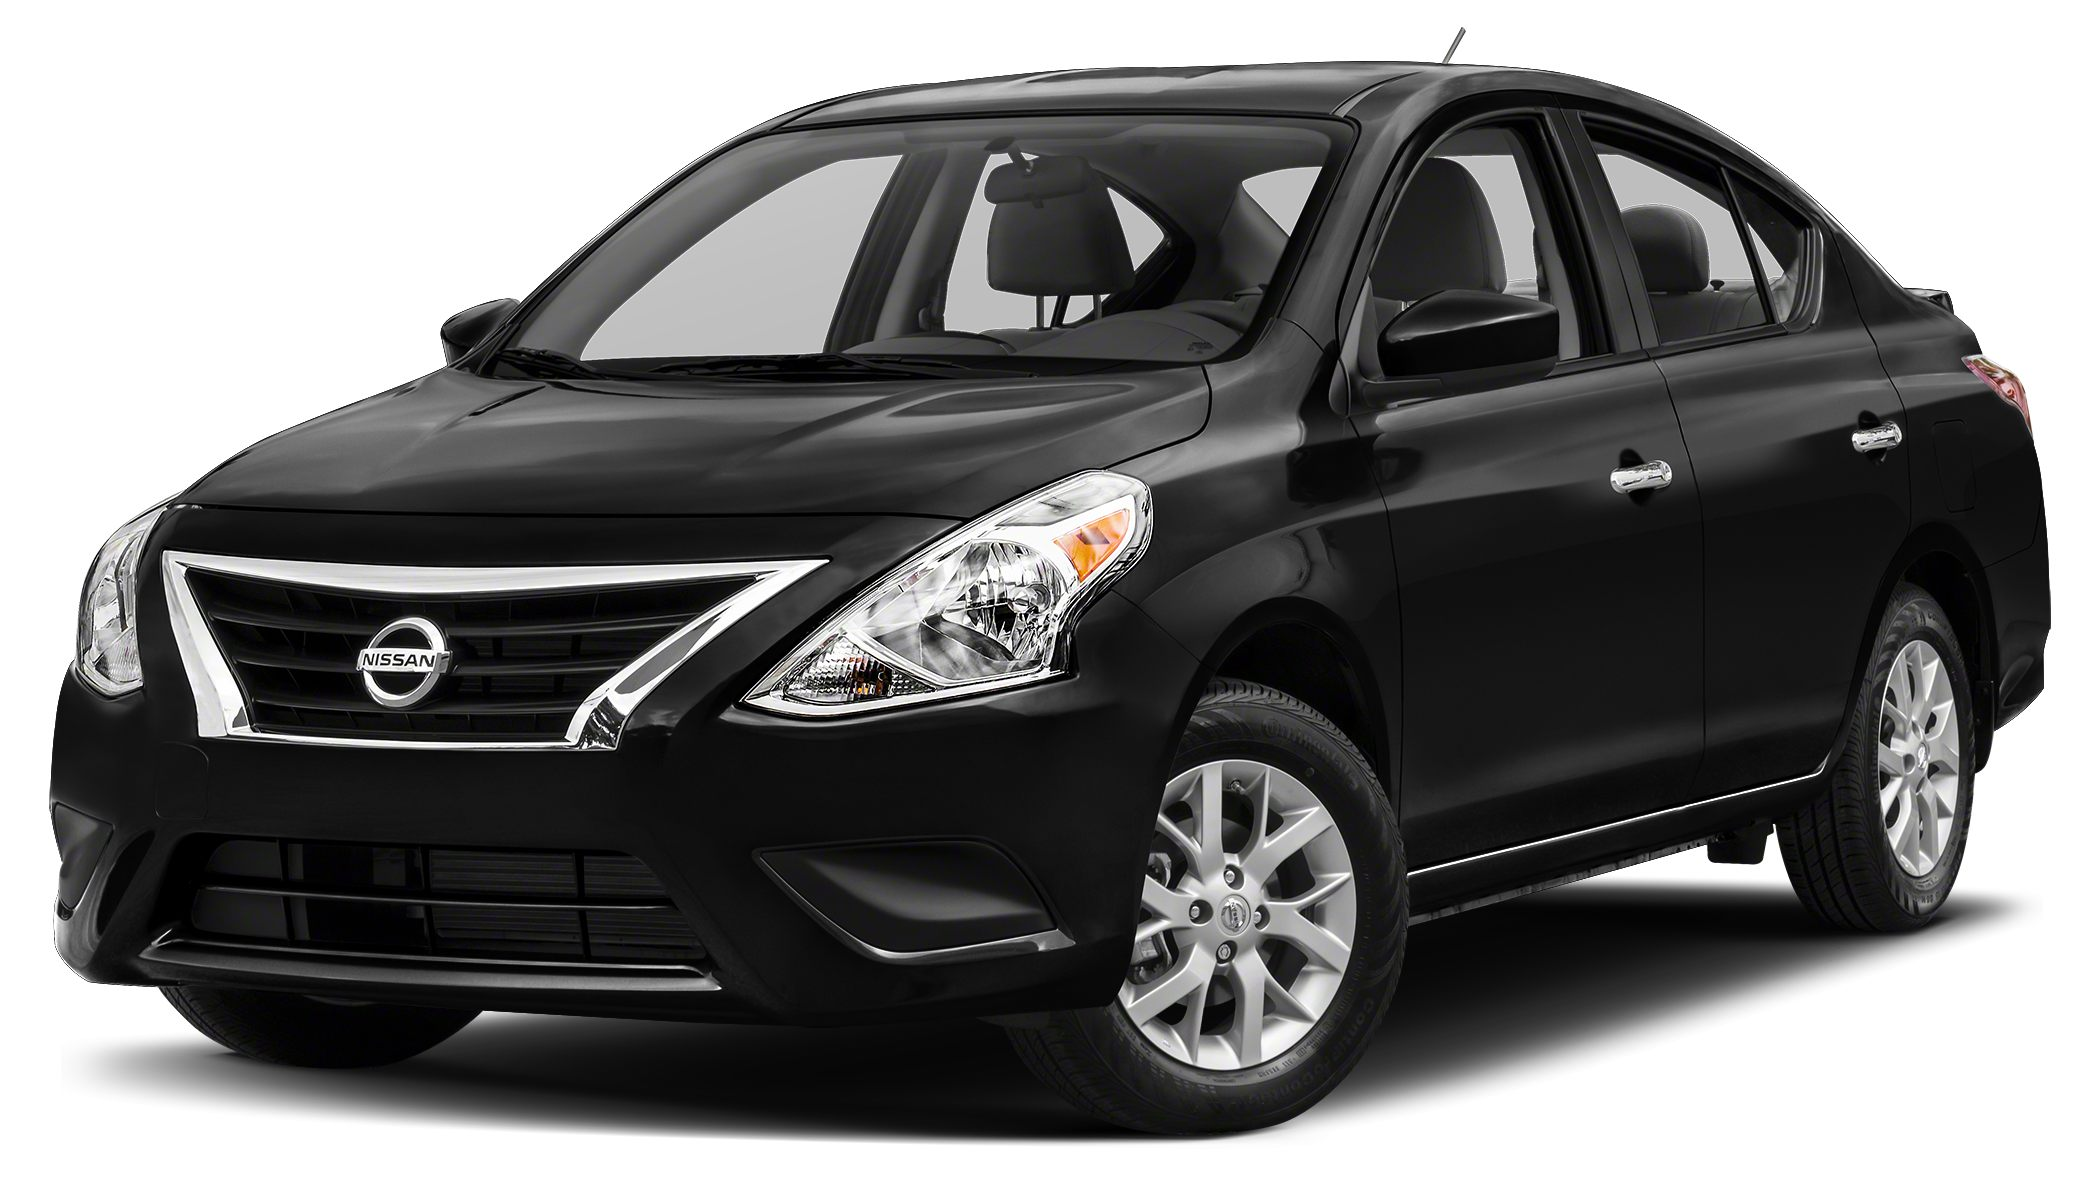 2017 Nissan Versa 16 SV Confused about which vehicle to buy Well look no further than this charm